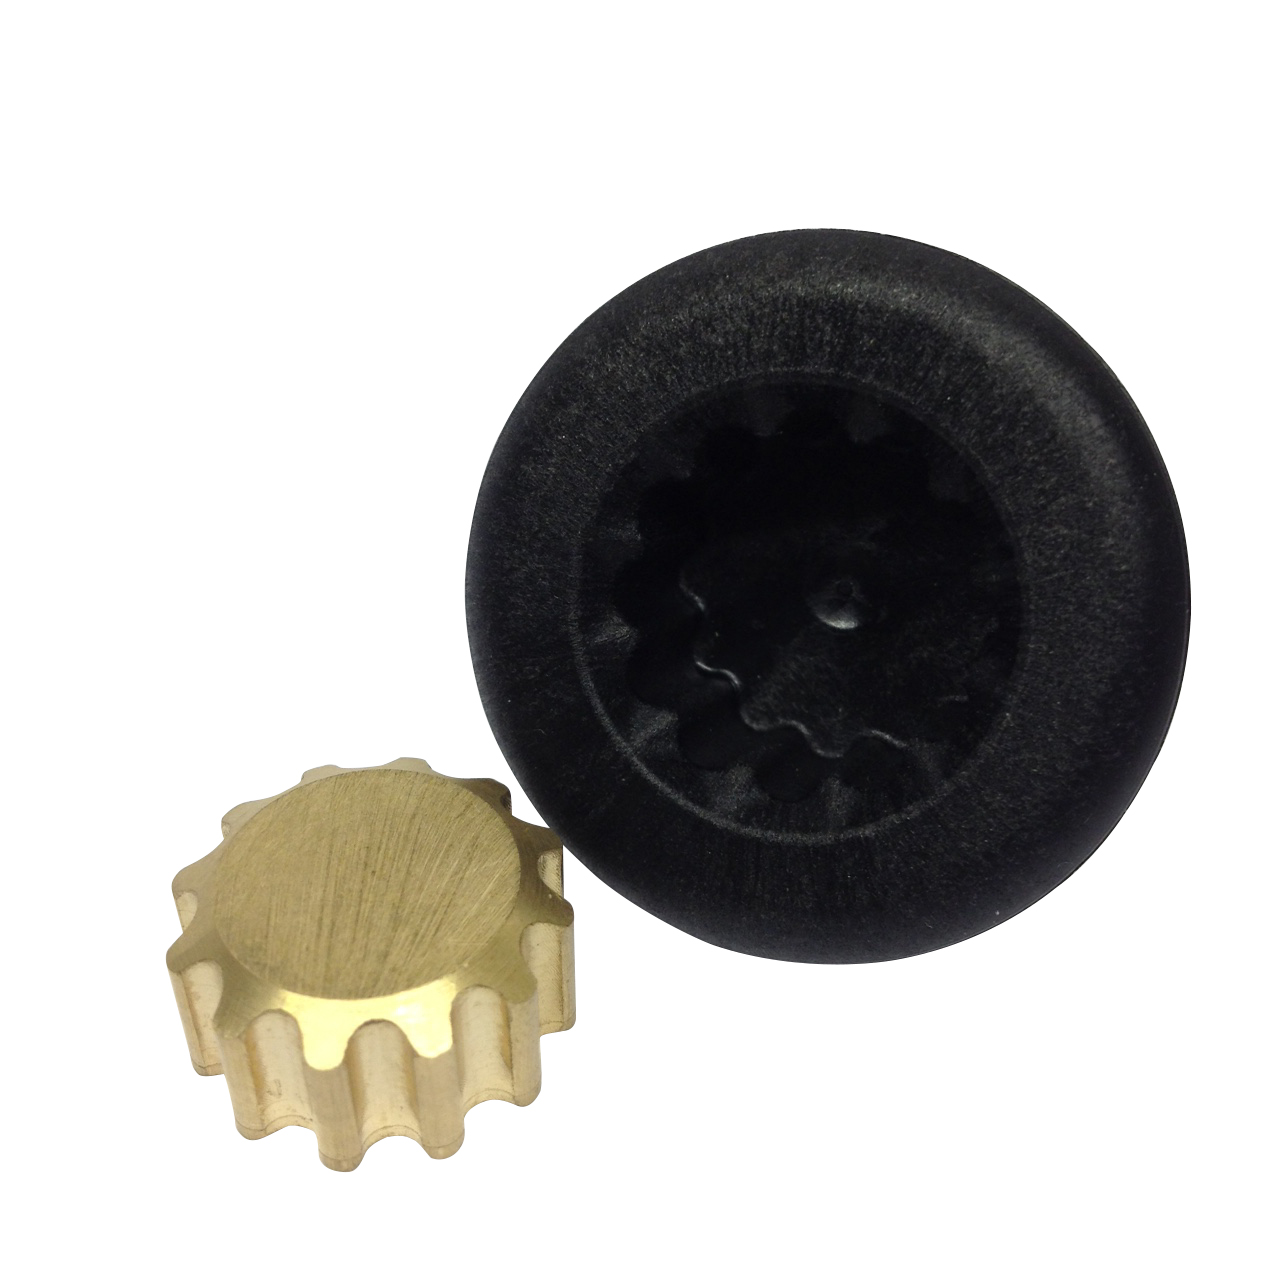 Replacement Kitchenaid Blender Drive Coupler Amp Gear For